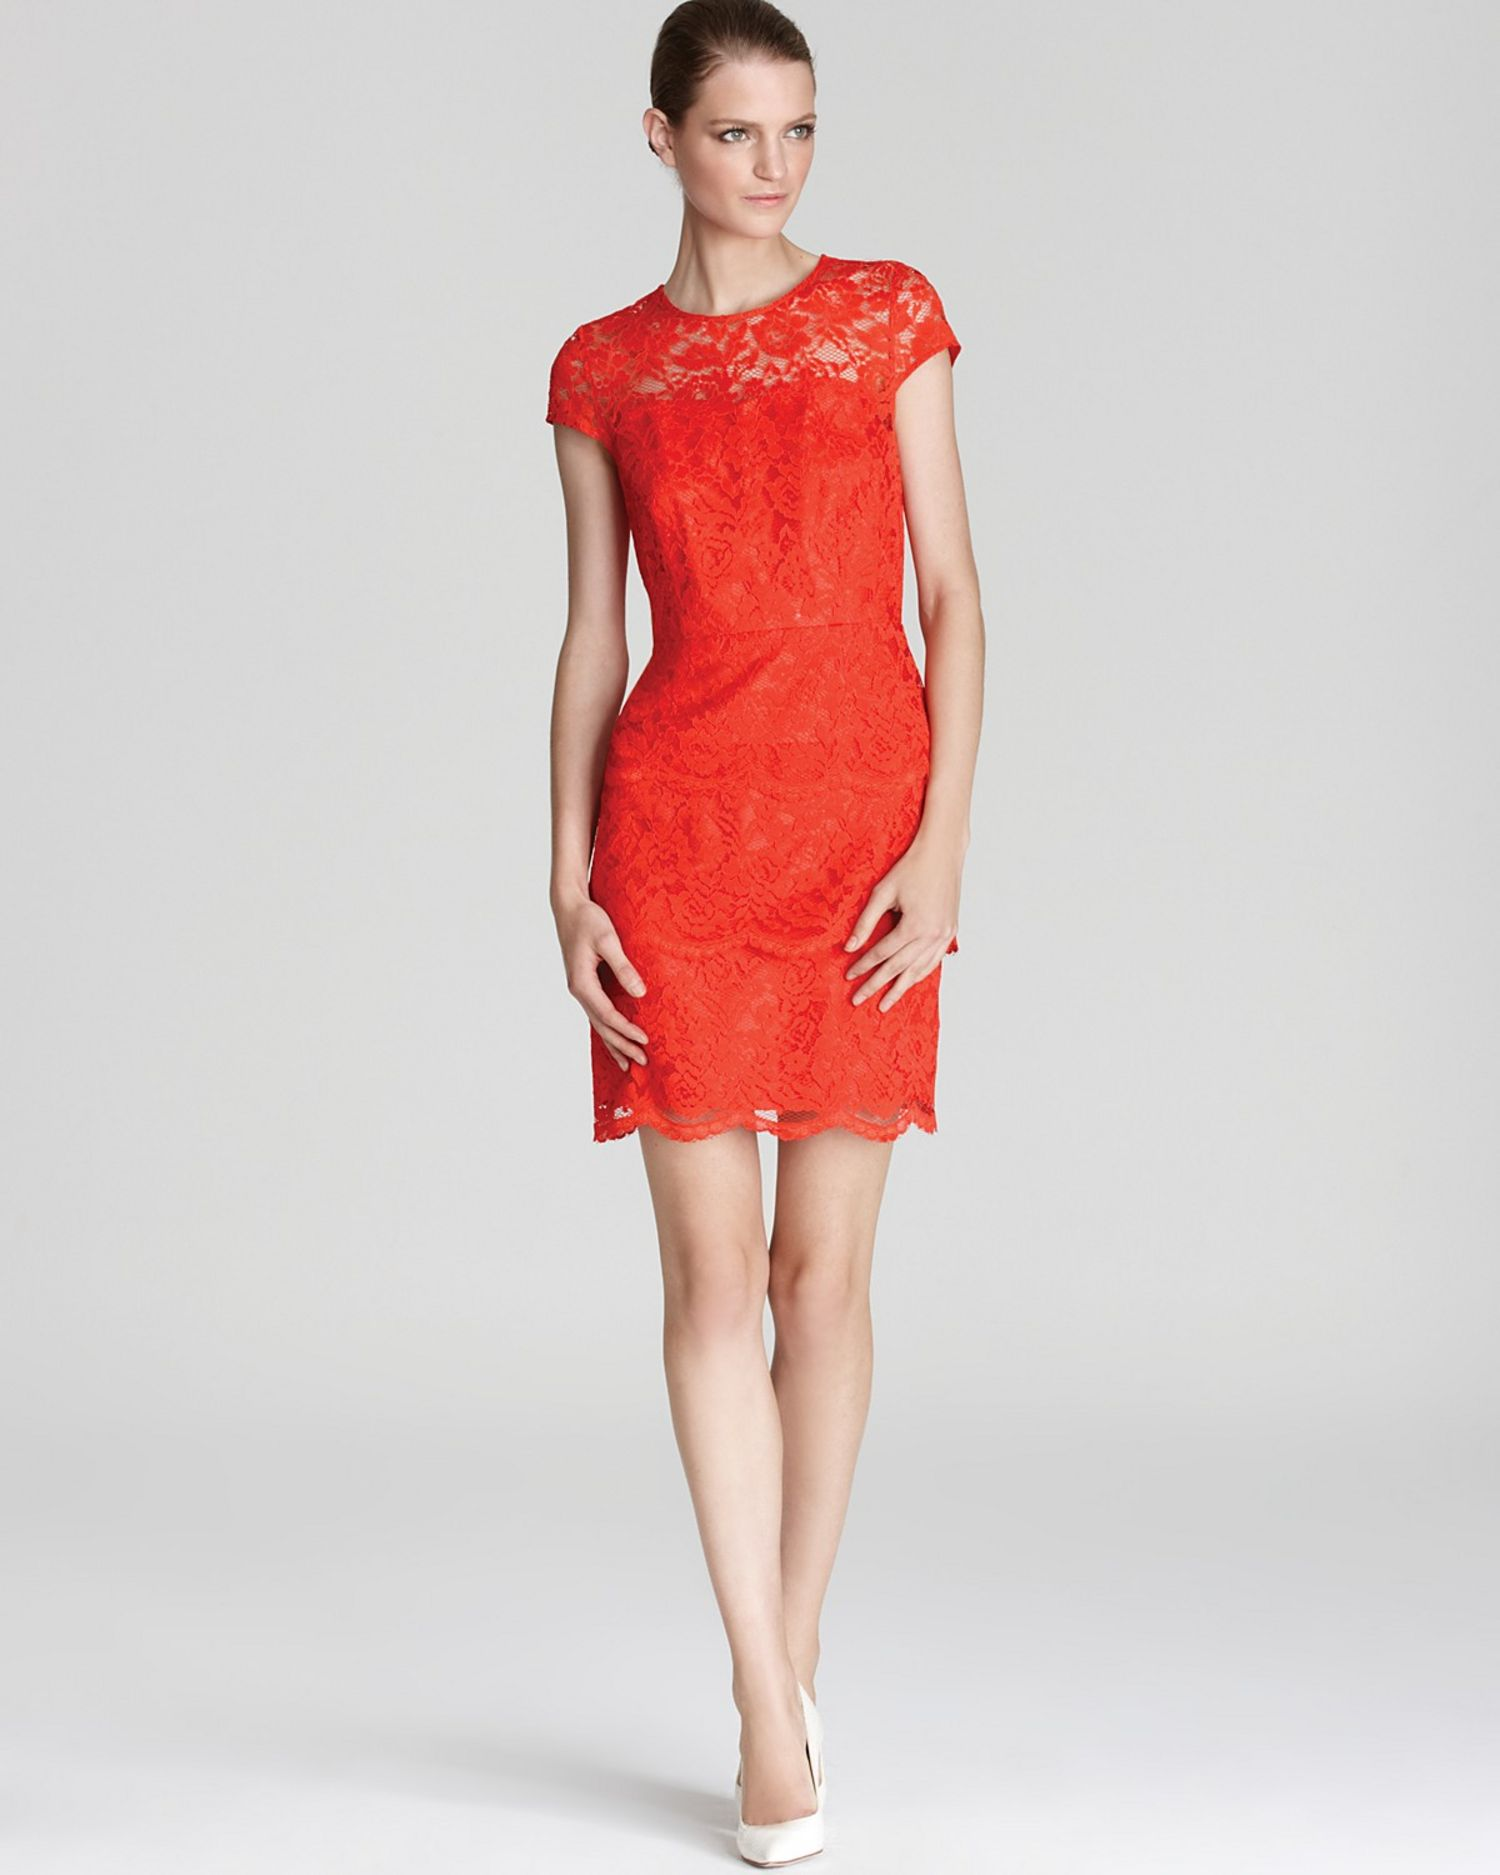 Elegant Red Dress Let It Do The Magic For You Ohh My My